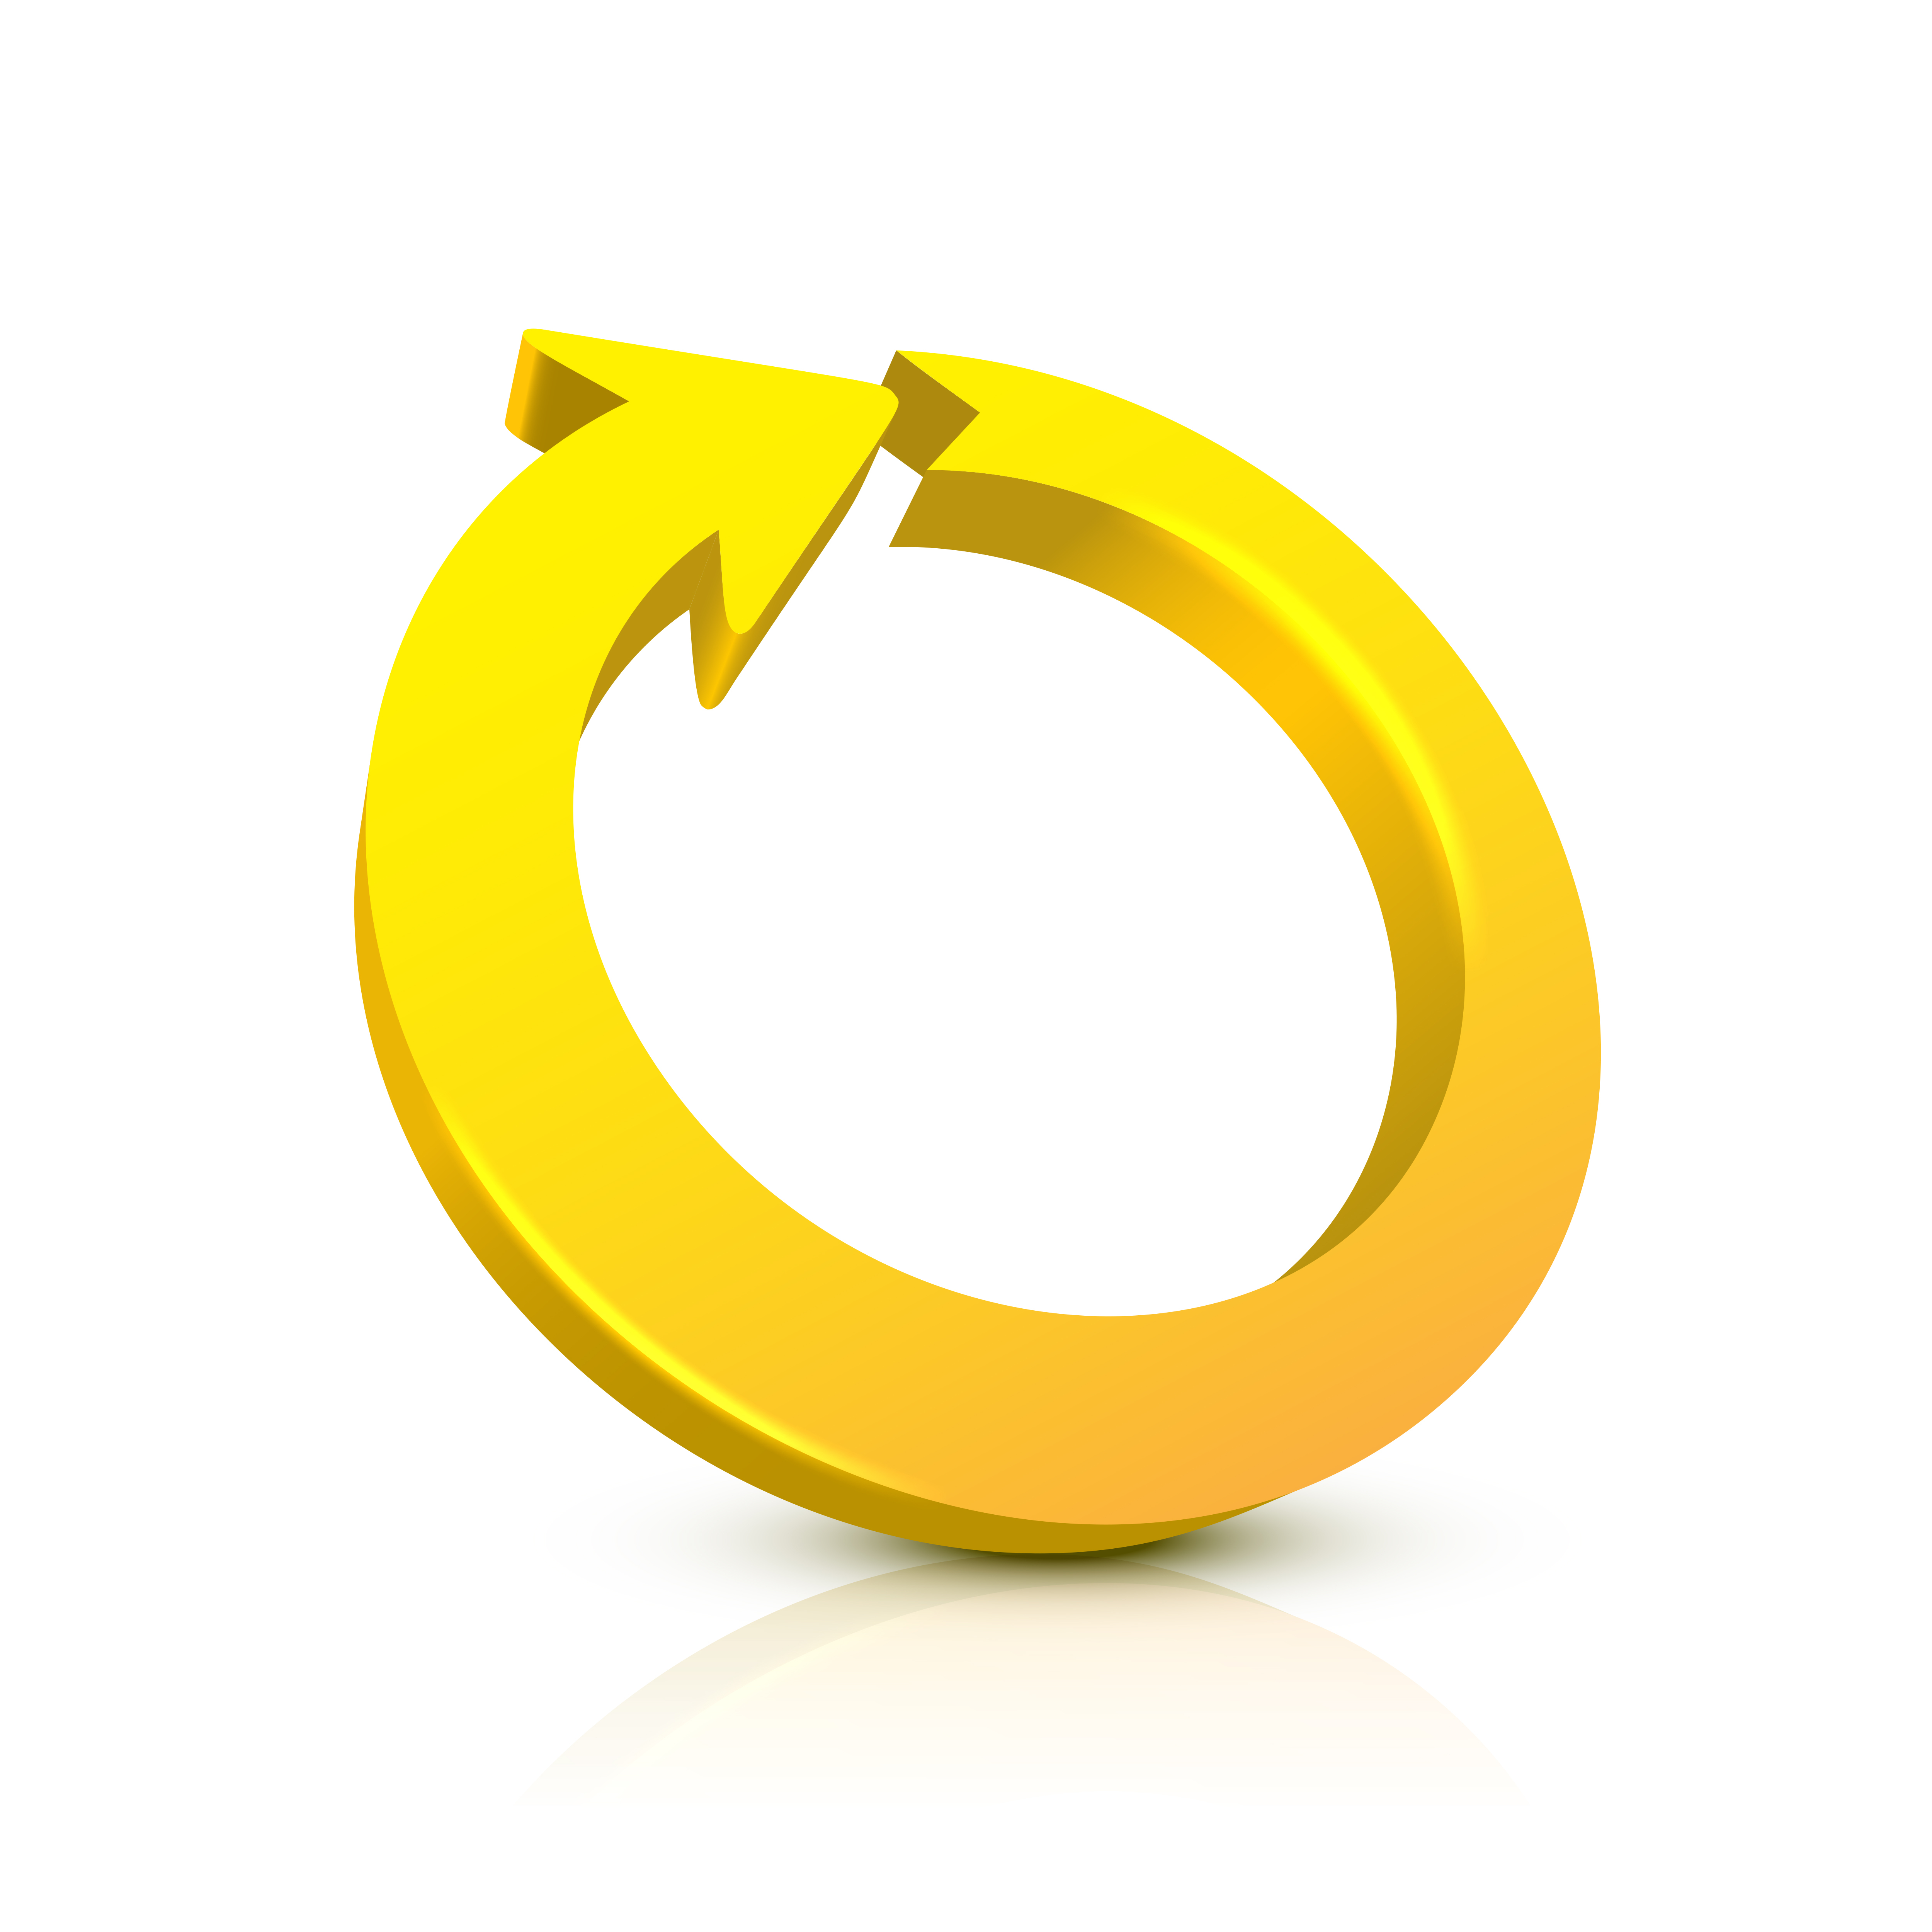 A graphic showing a yellow circle with an arrow